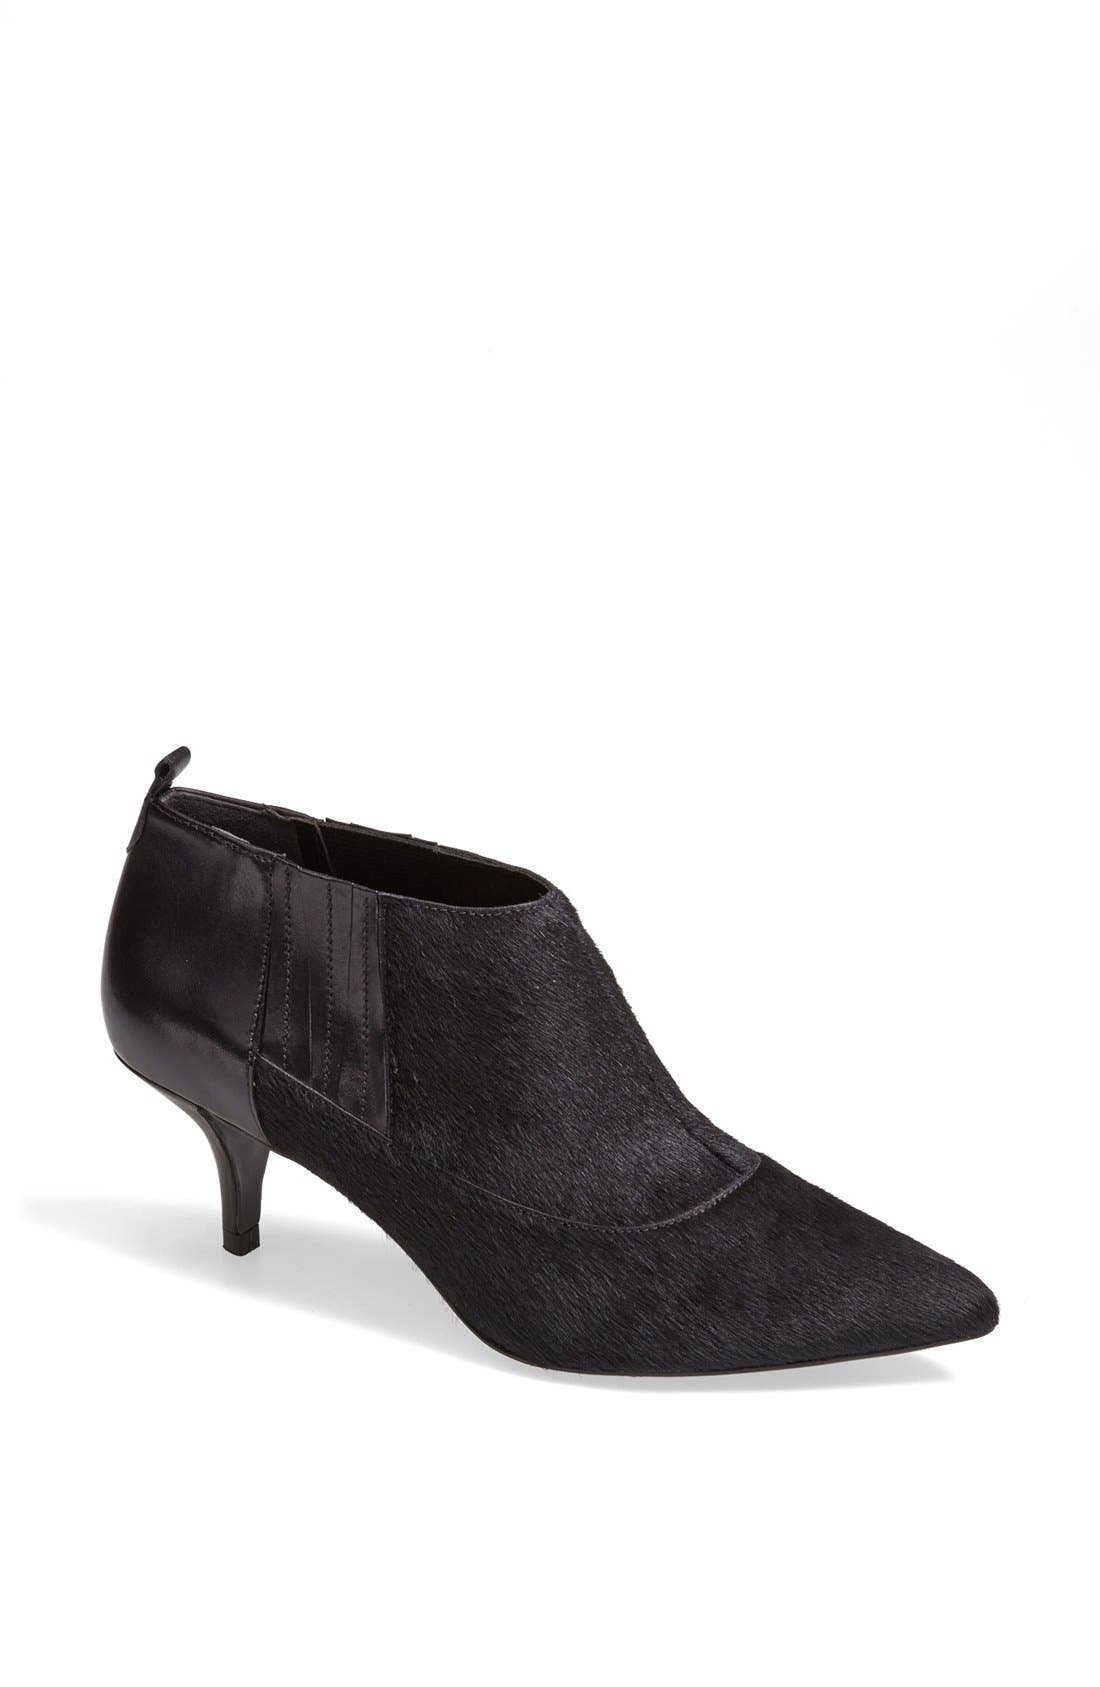 Alternate Image 1 Selected - Kenneth Cole 'Prince' Bootie